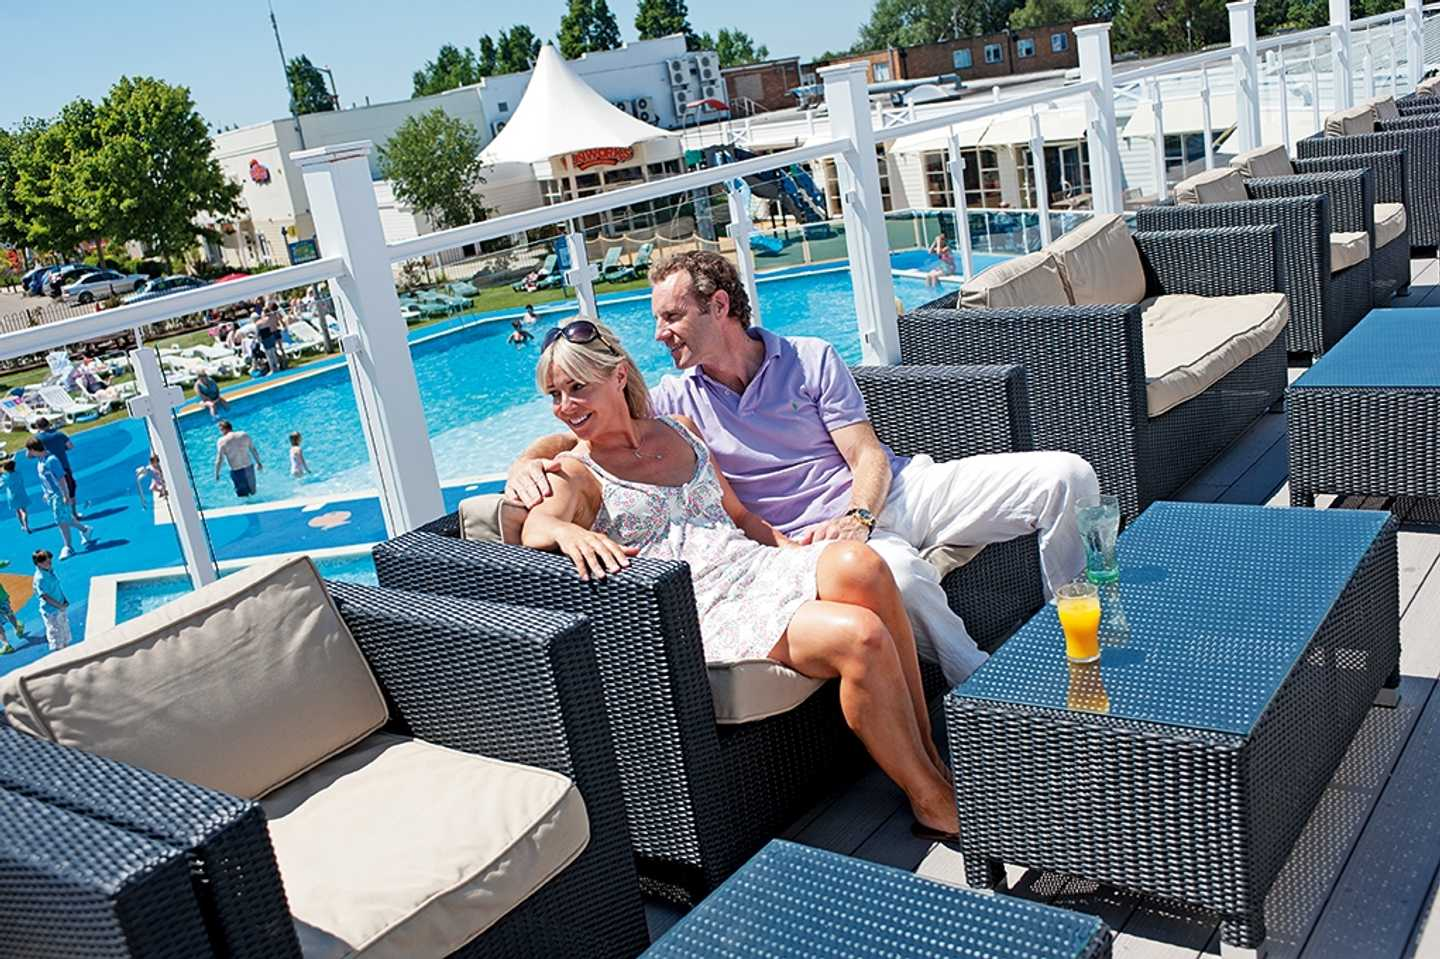 Guests enjoying a drink on the Mash and Barrel terrace overlooking the outdoor pool